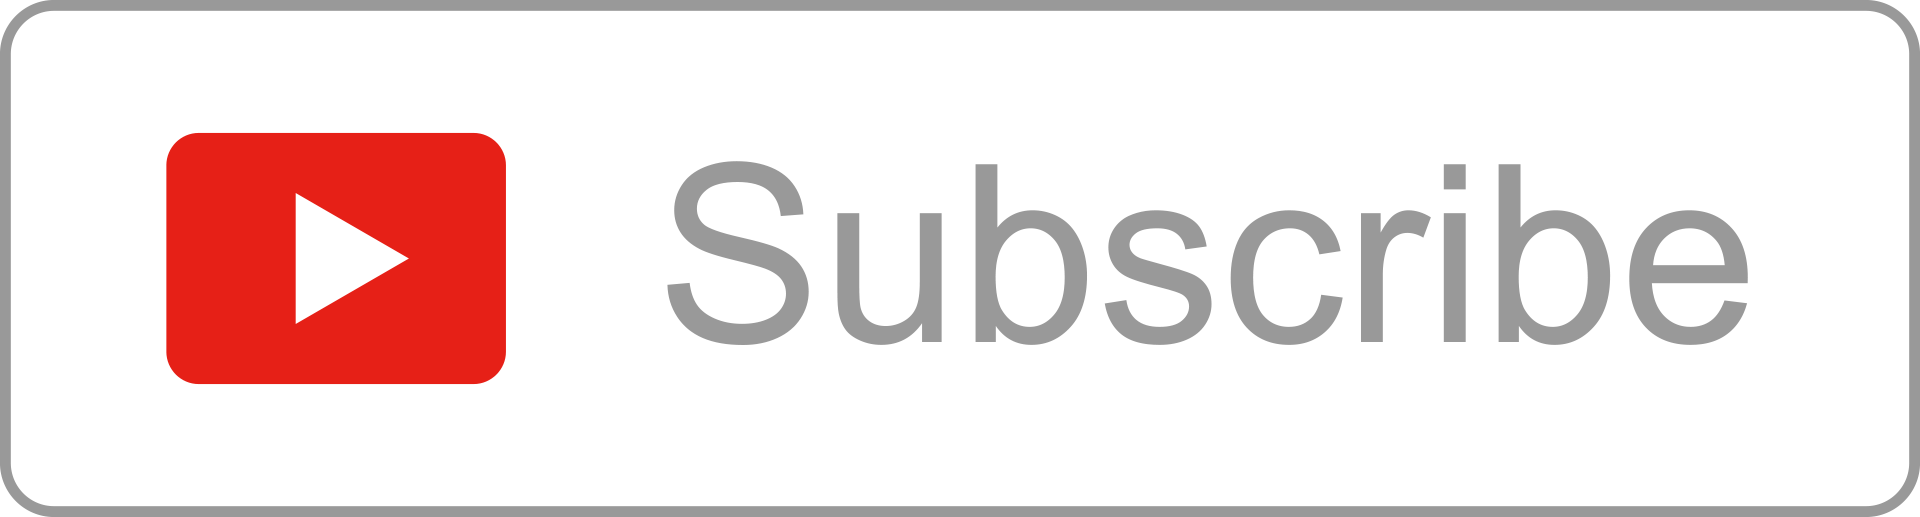 Youtube subscribe button png. Free download by alfredocreates